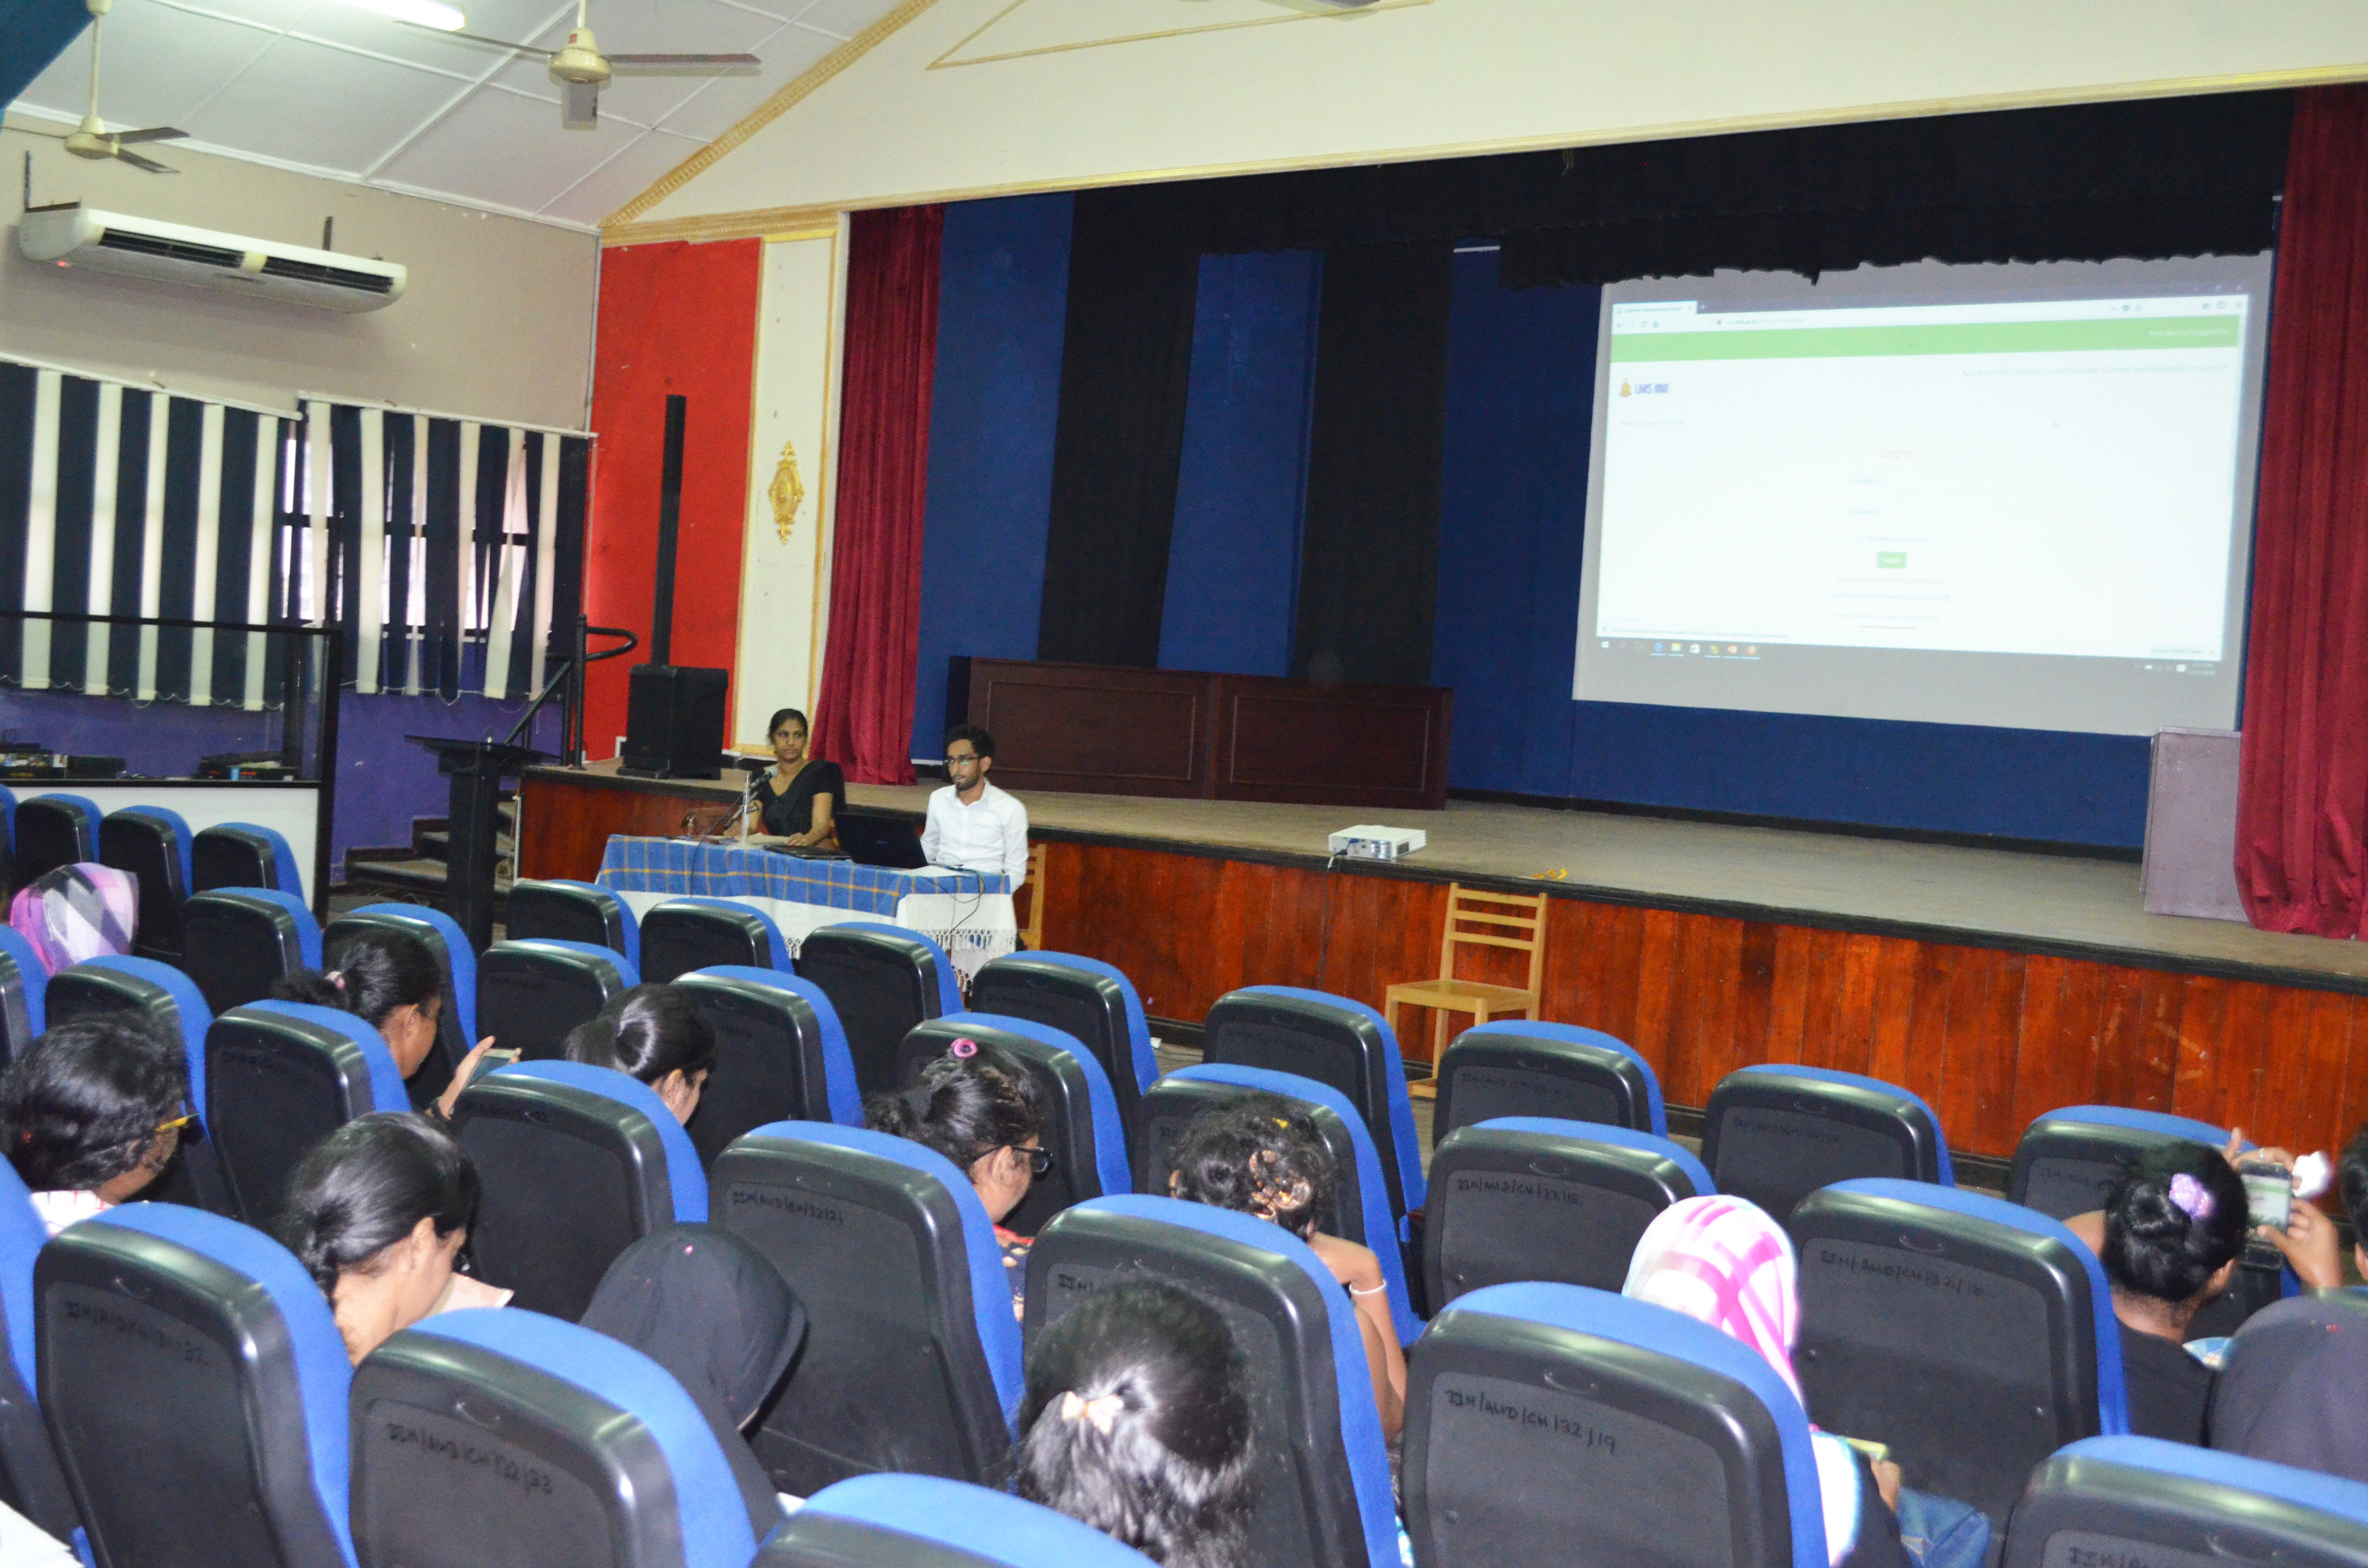 LMS Workshop for Students Level III BAMS   (2014/2015) of the IIM